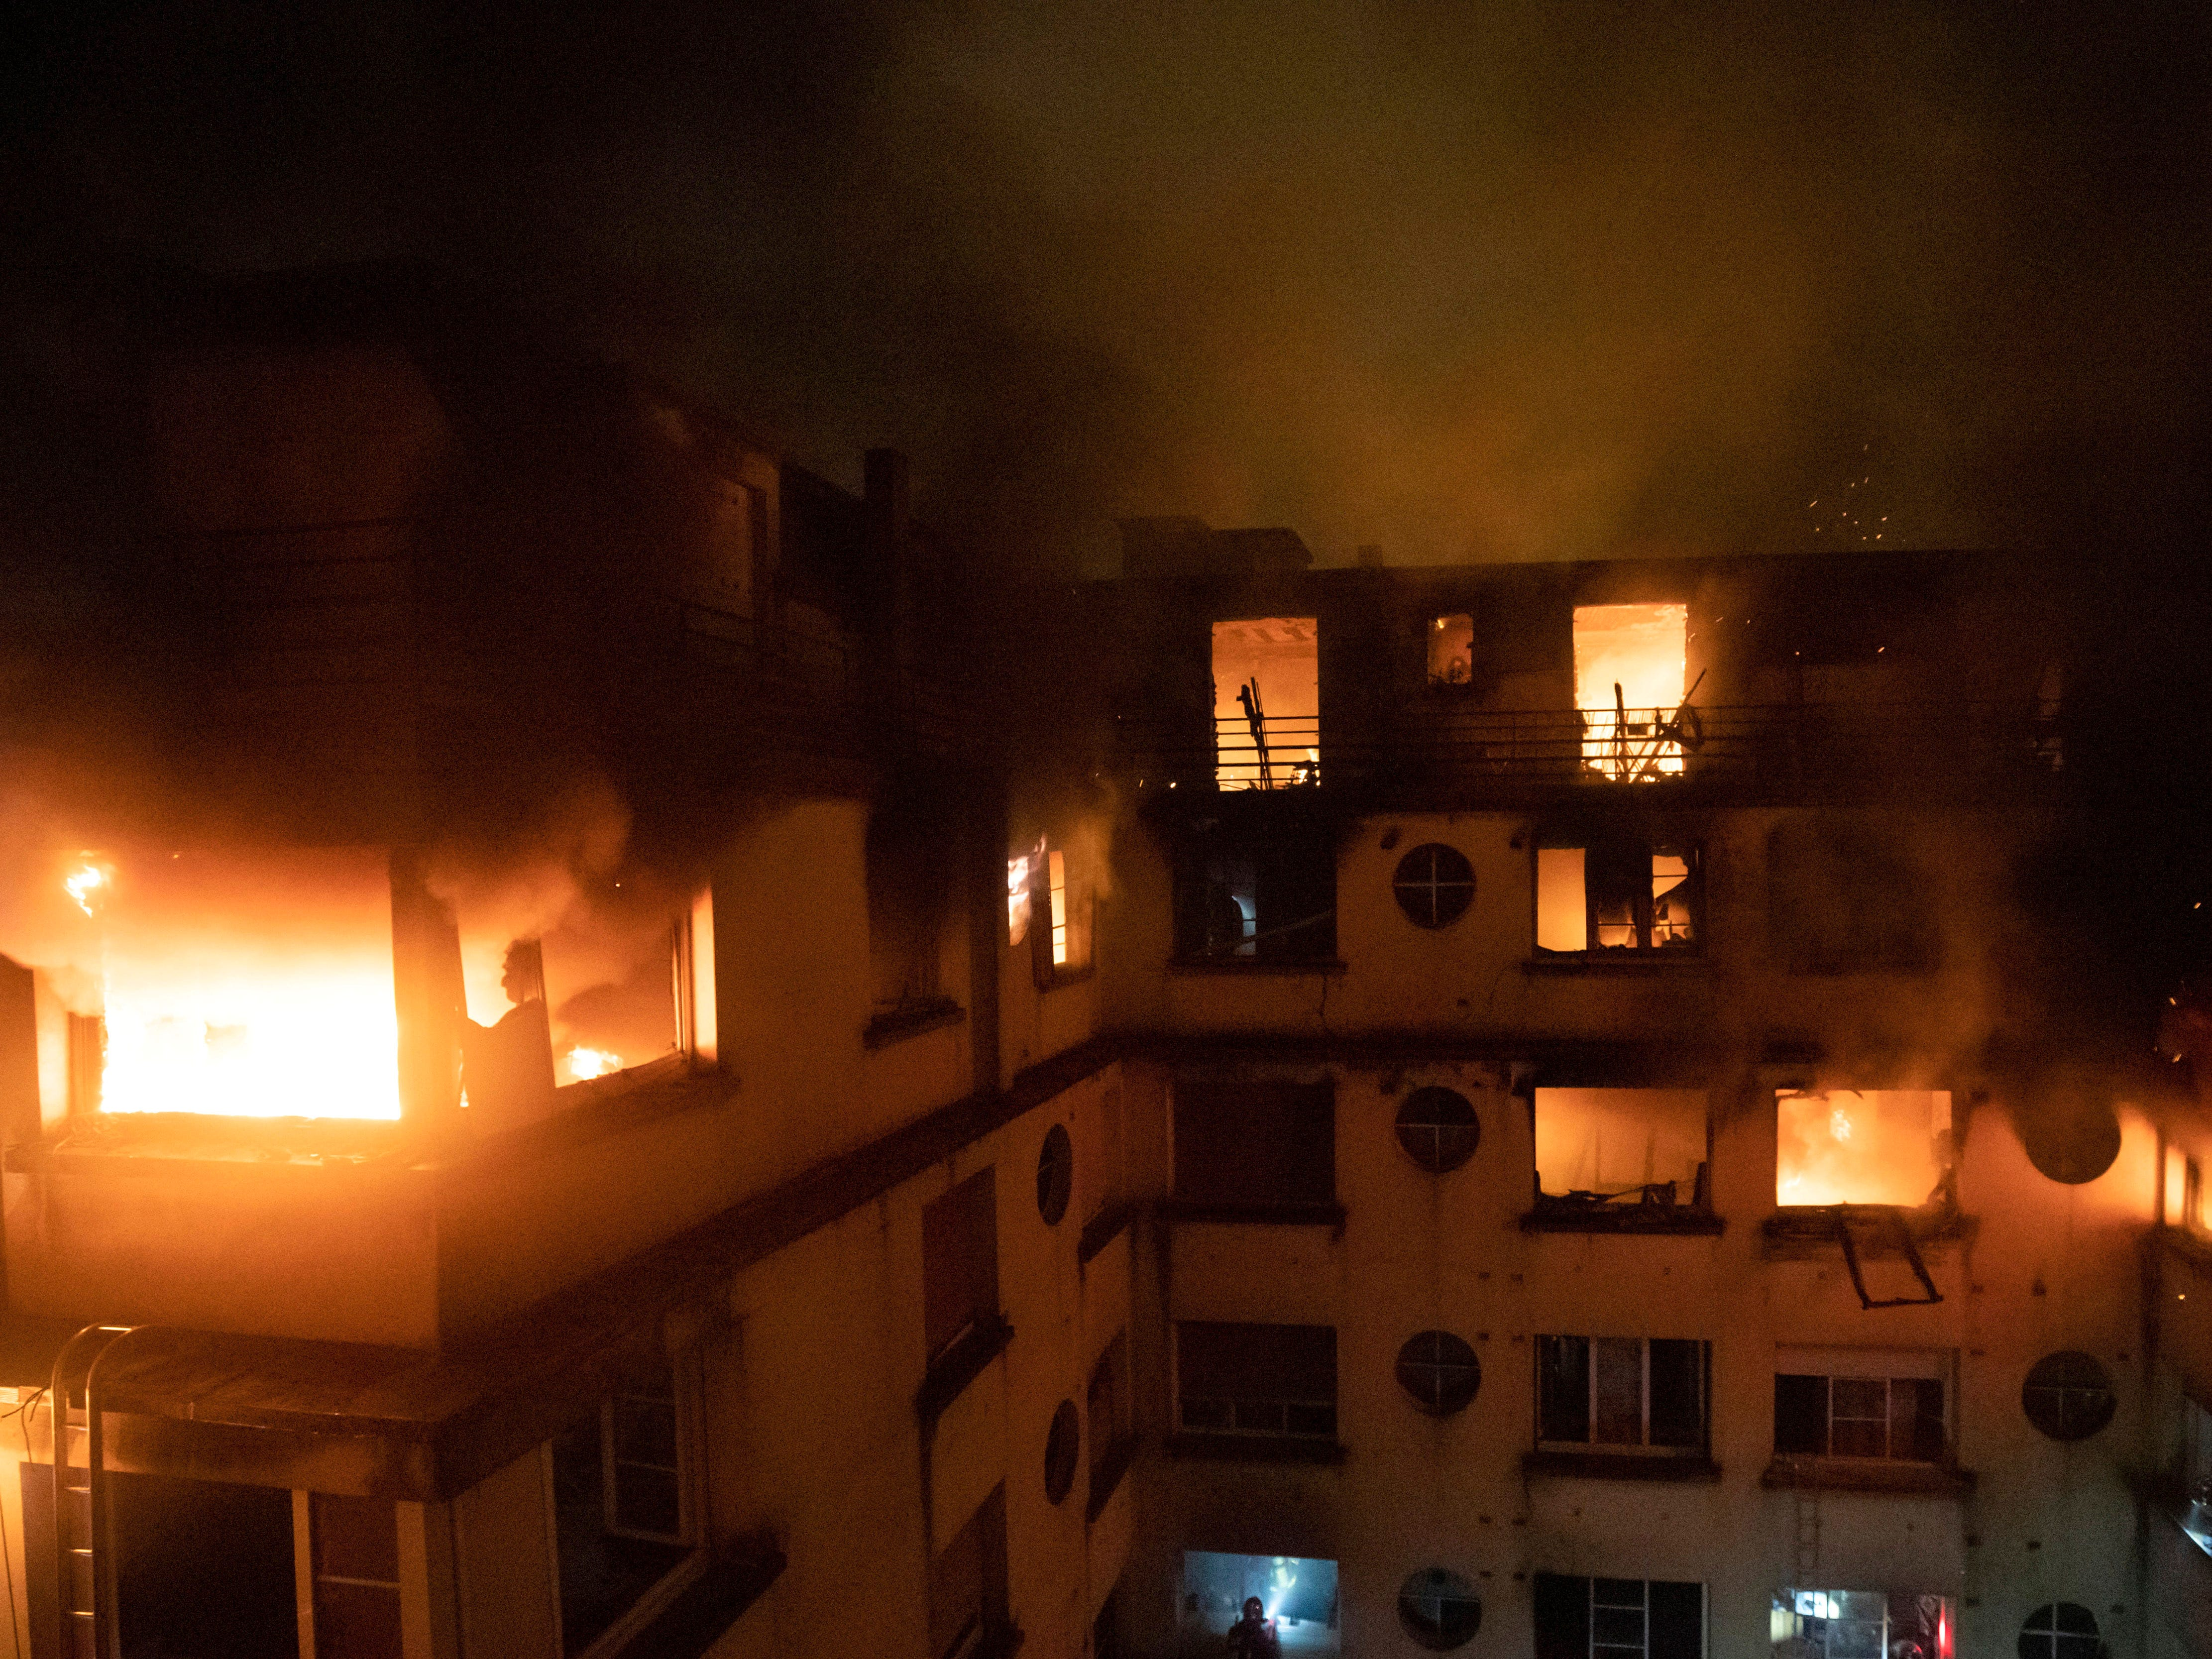 In this photo provided on Feb. 5, 2012 by the Brigade de Sapeurs-Pompiers de Paris (Paris Fire Brigade), a fire rages through the top floors of an apartment building in Paris, France. A woman has been arrested over a deadly blaze that killed ten people in Paris and police are treating the fire as a possible arson attack, a prosecutor said early on February 5.